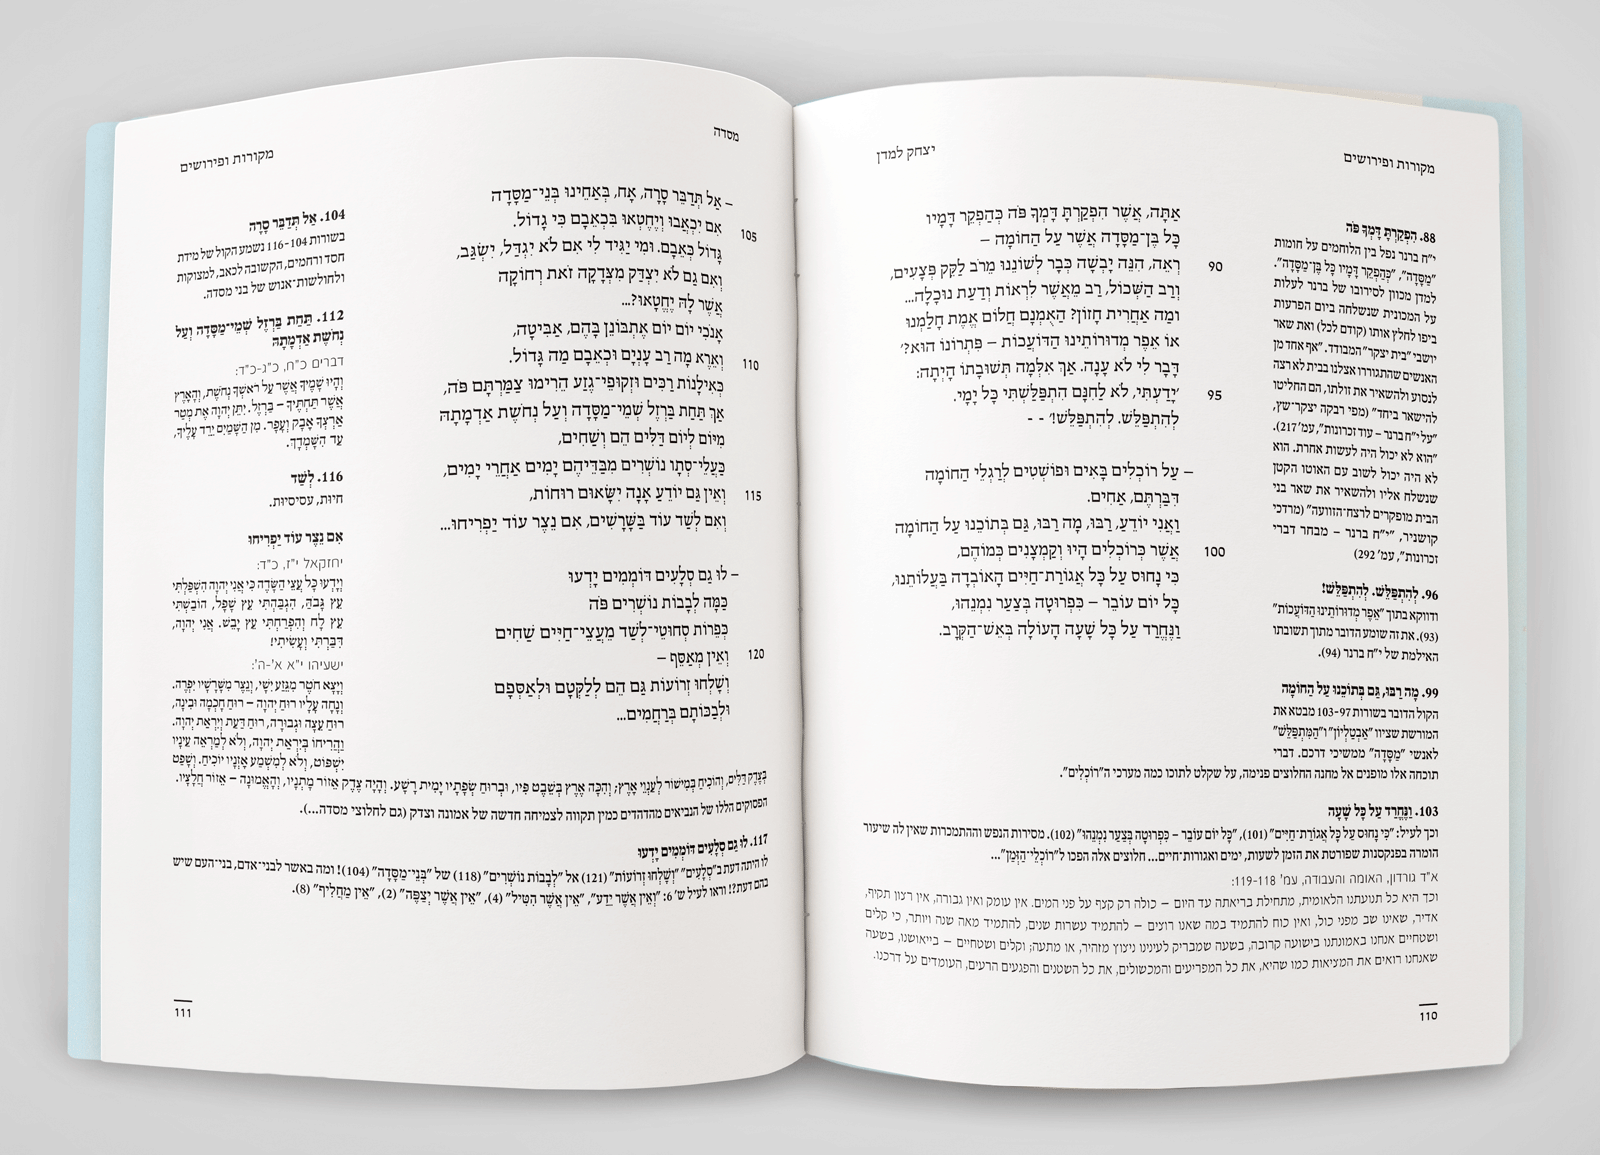 http://bigeyes.co.il/wp-content/uploads/2019/04/masada-4.png